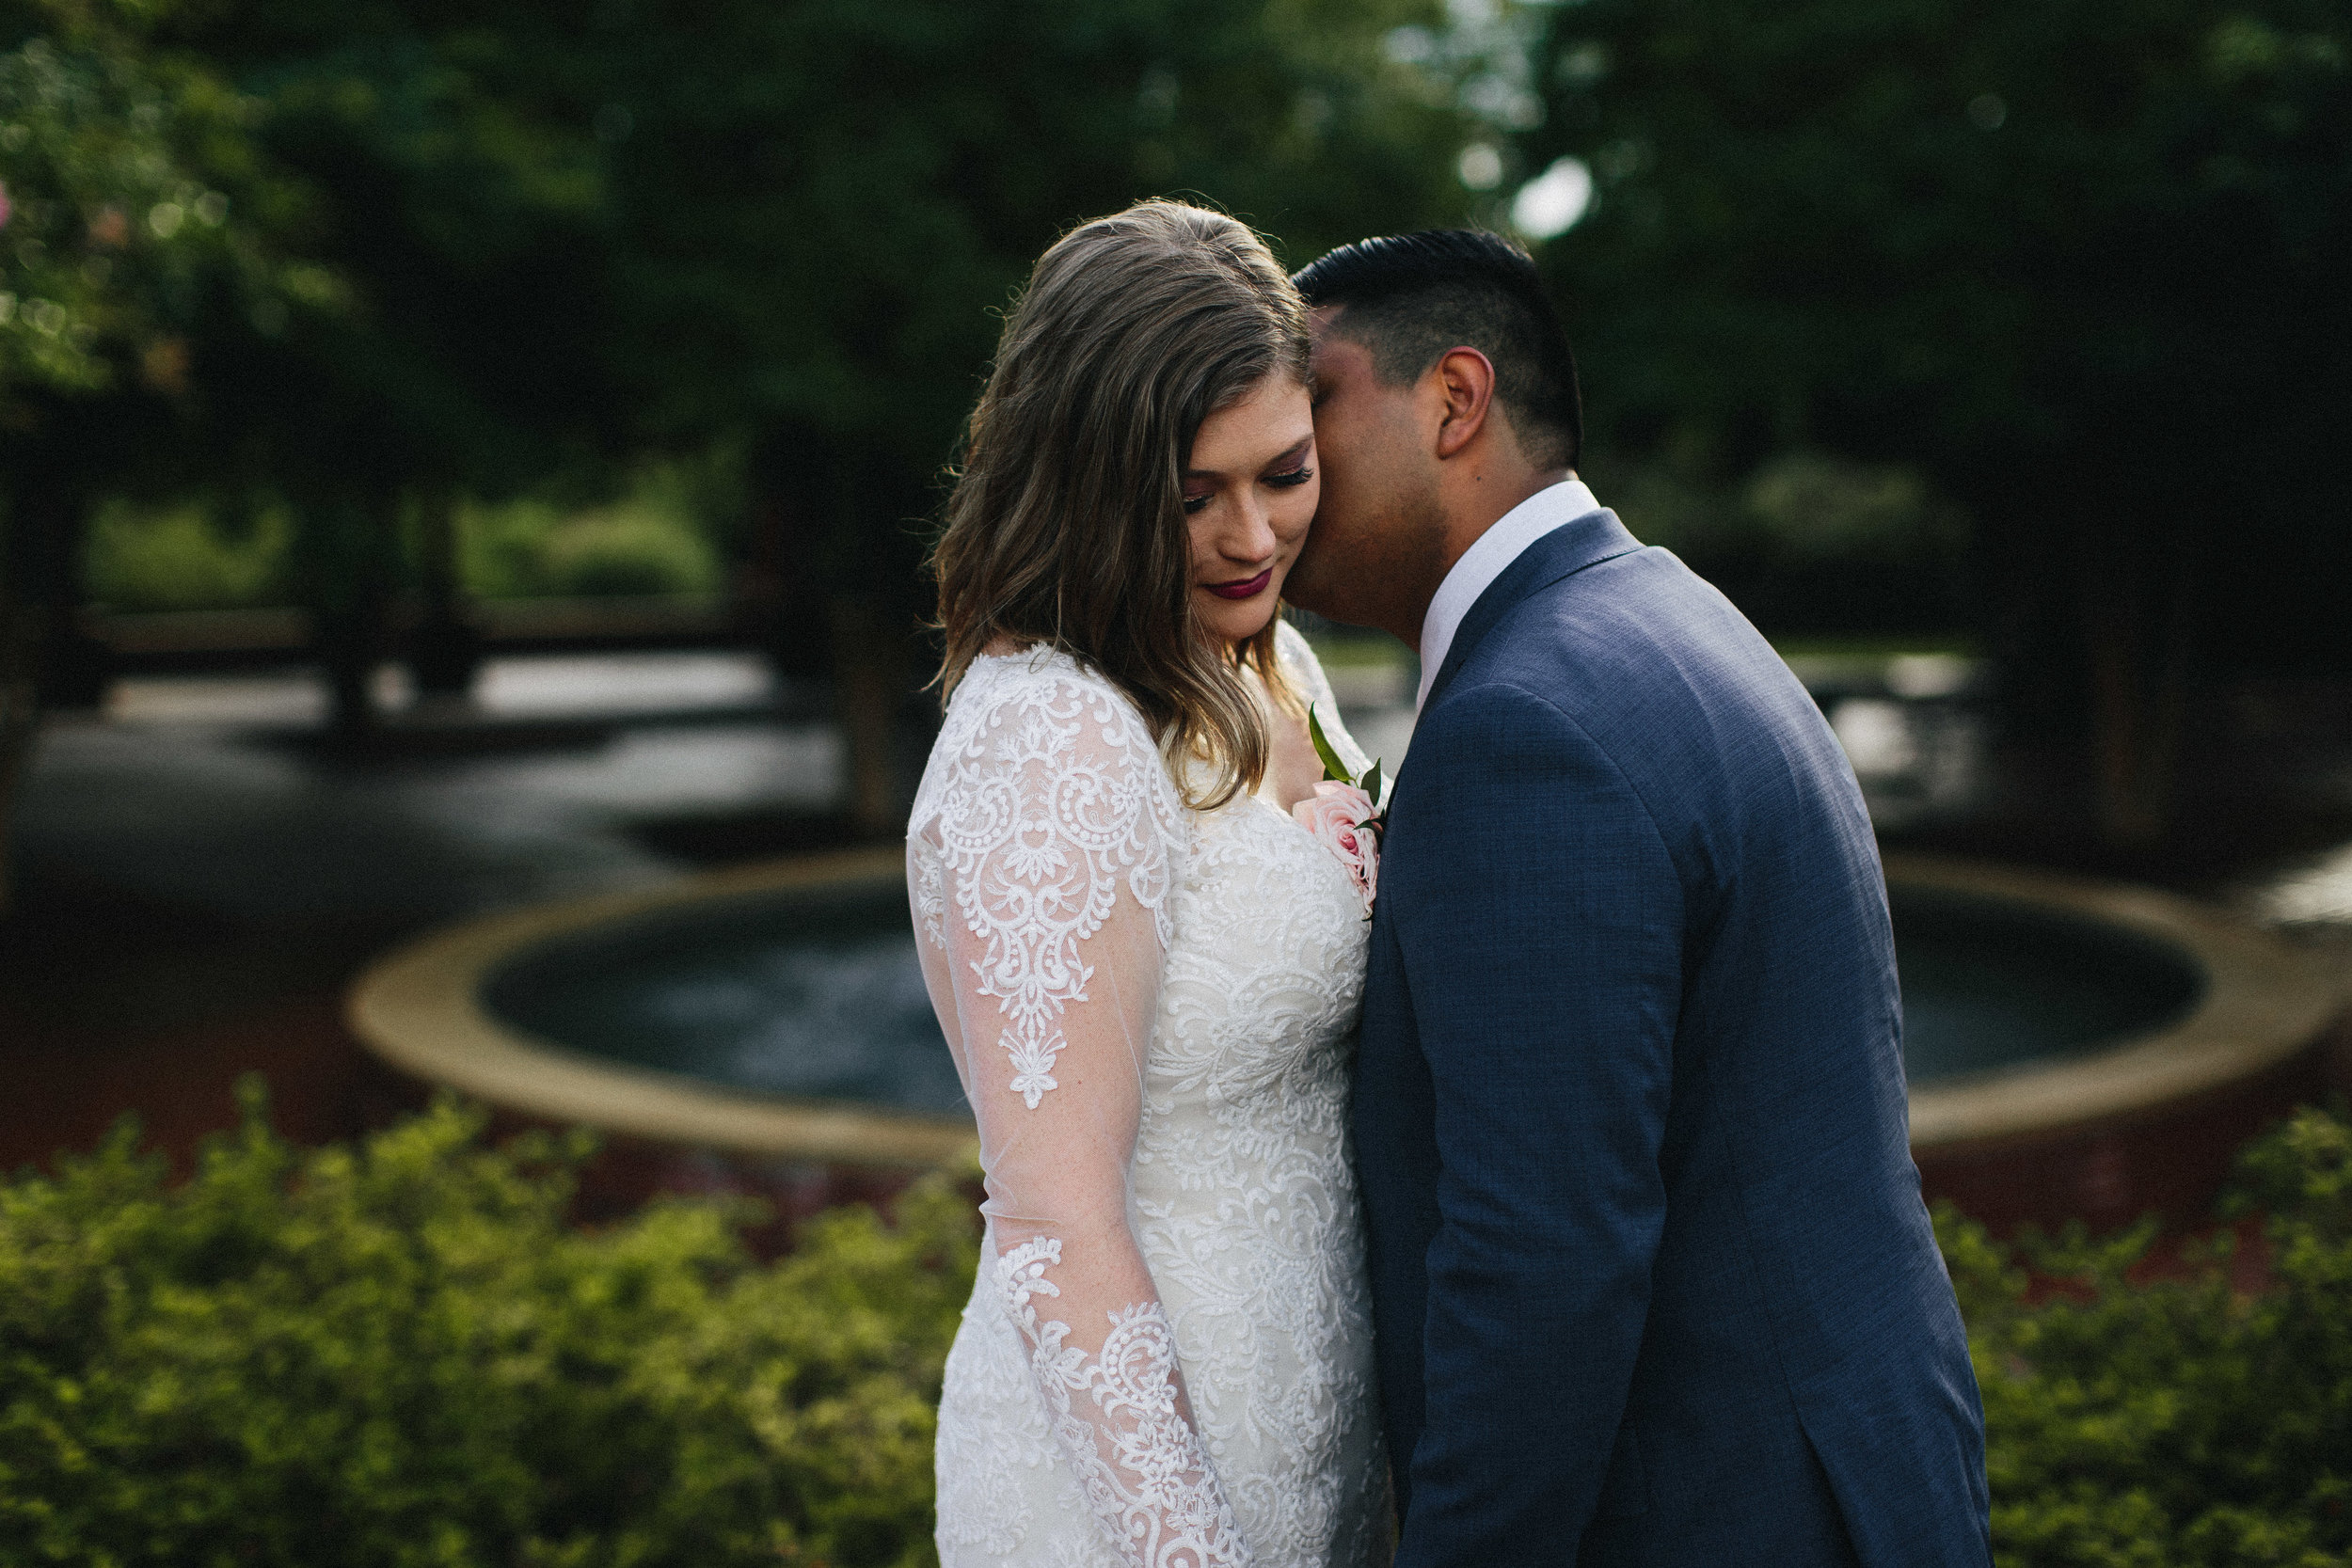 newnan_georgia_elegant_rainy_park_elopement_dogs_pups_tiny_wedding_backless_dress_blue_suit_georgia_atlanta_photographer_1356.jpg